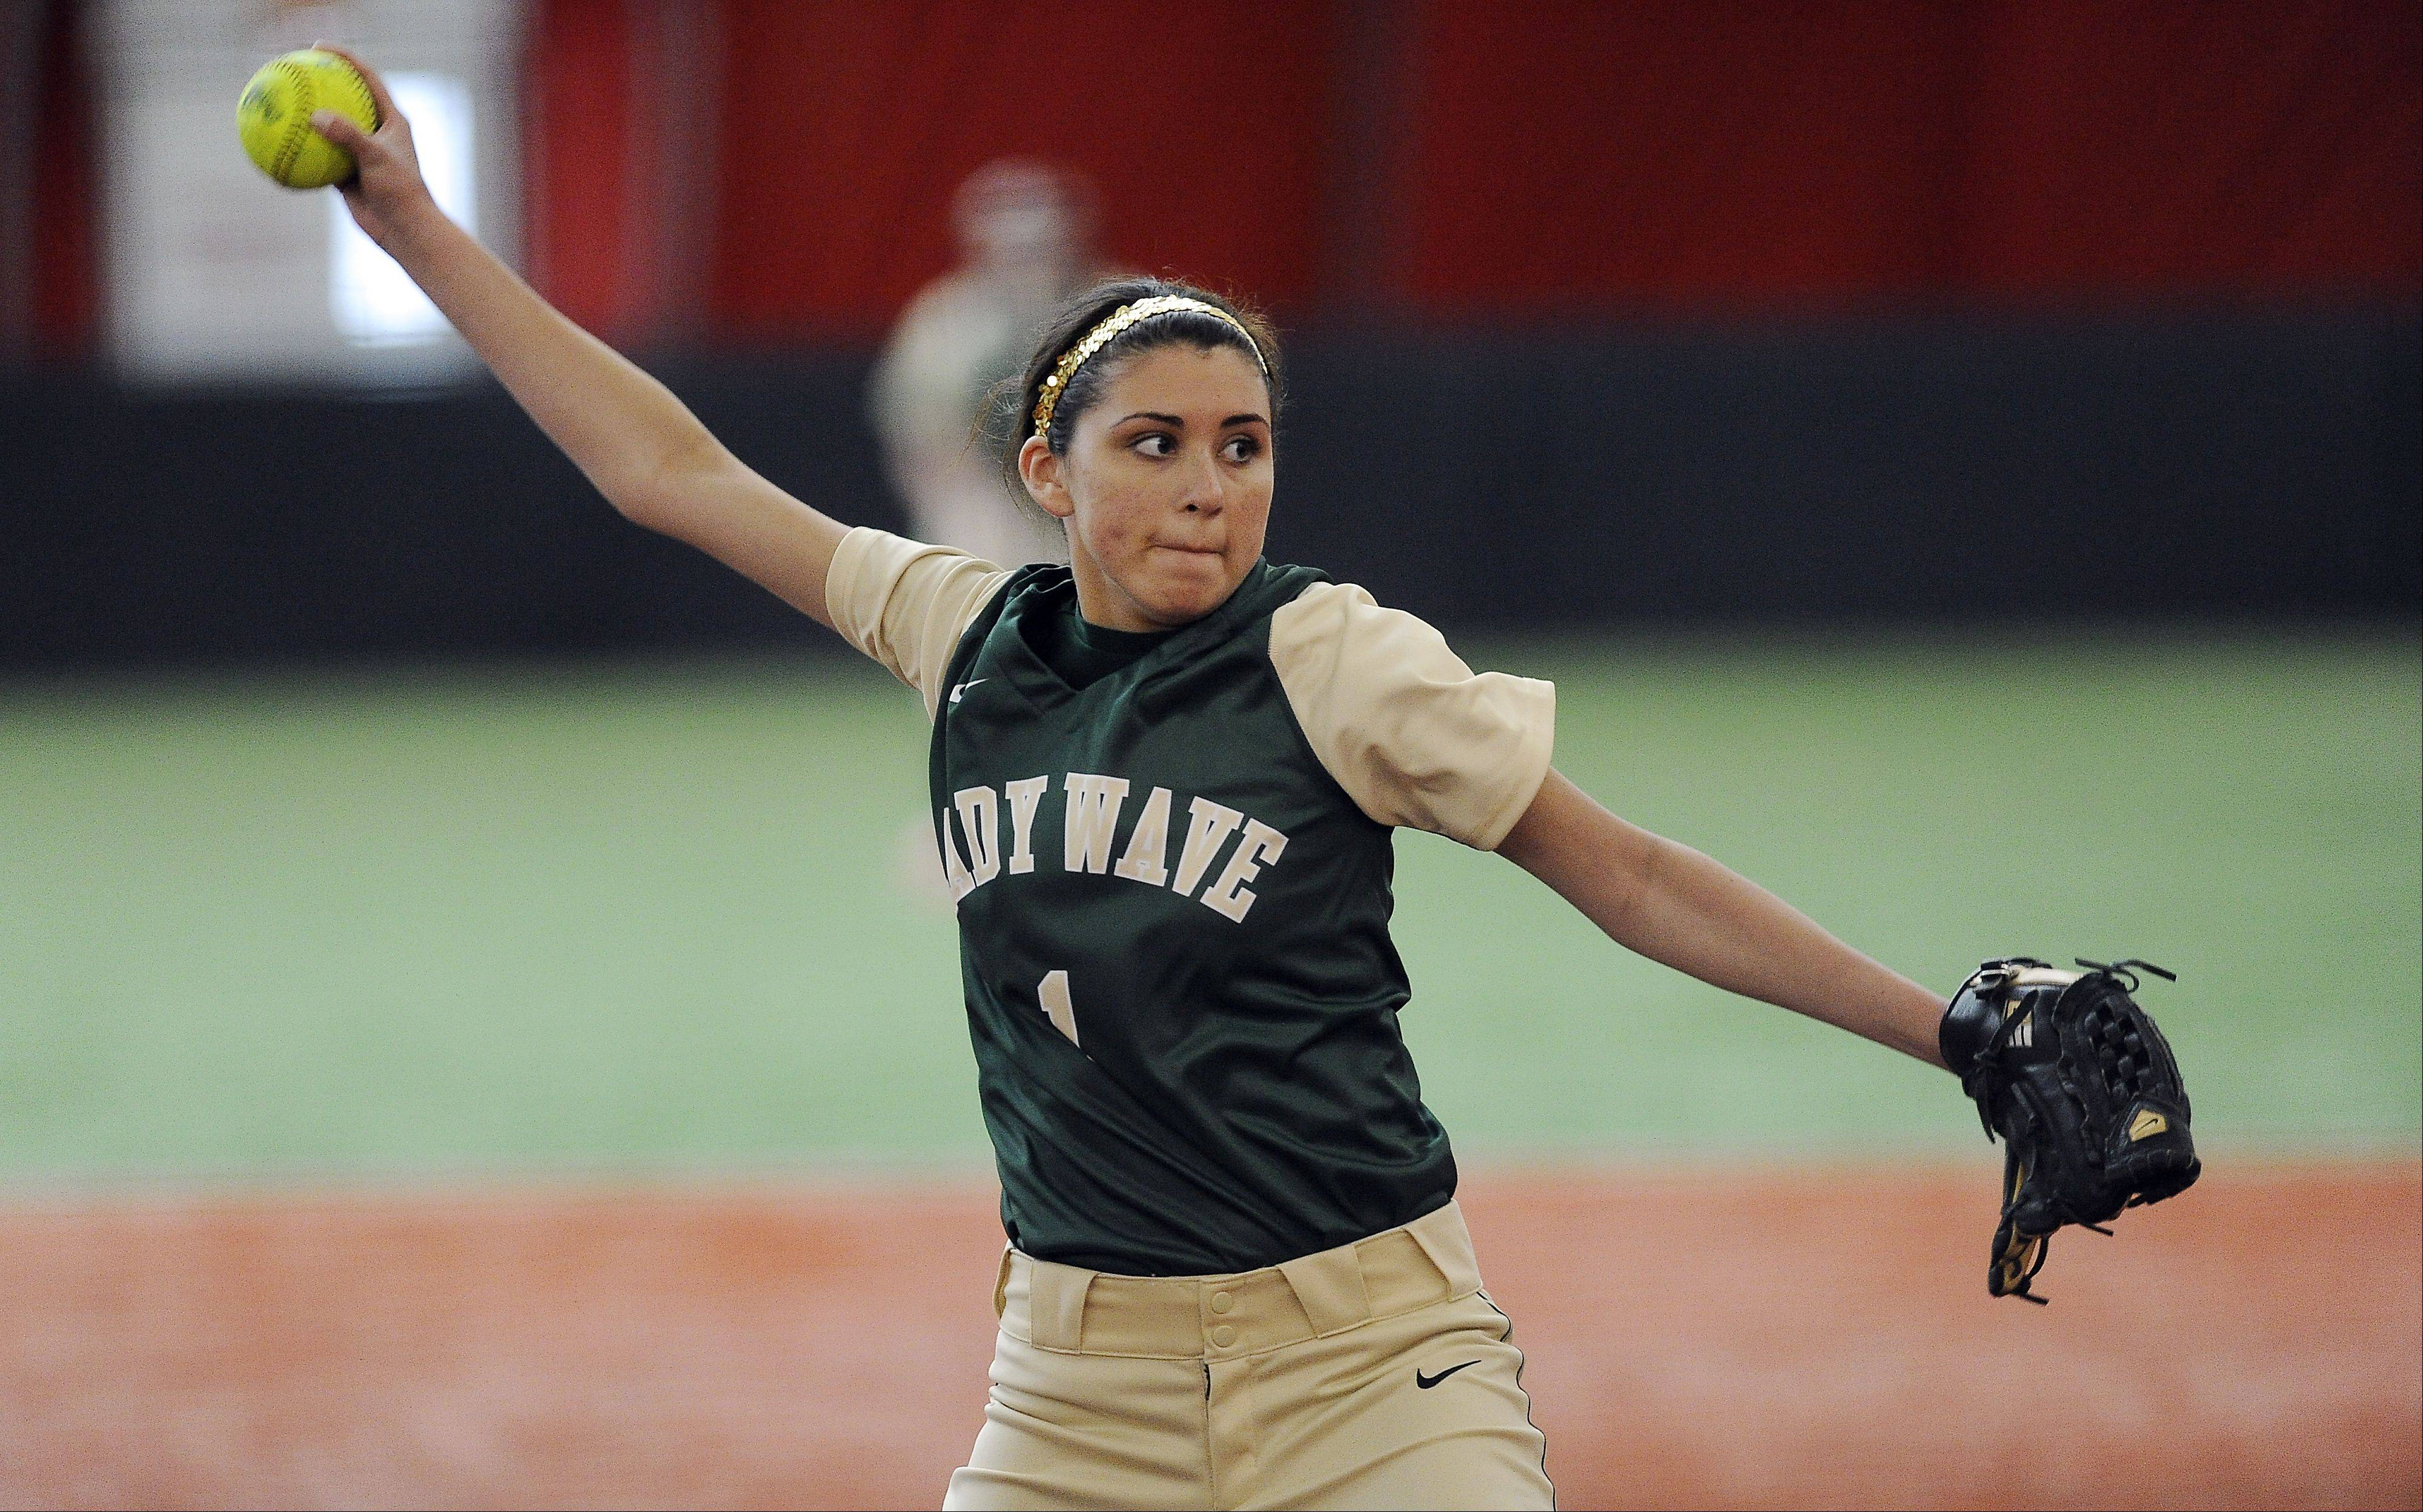 St. Edward sophomore pitcher Angela Zenteno fires one in against Freeport in Rosemont on Monday.